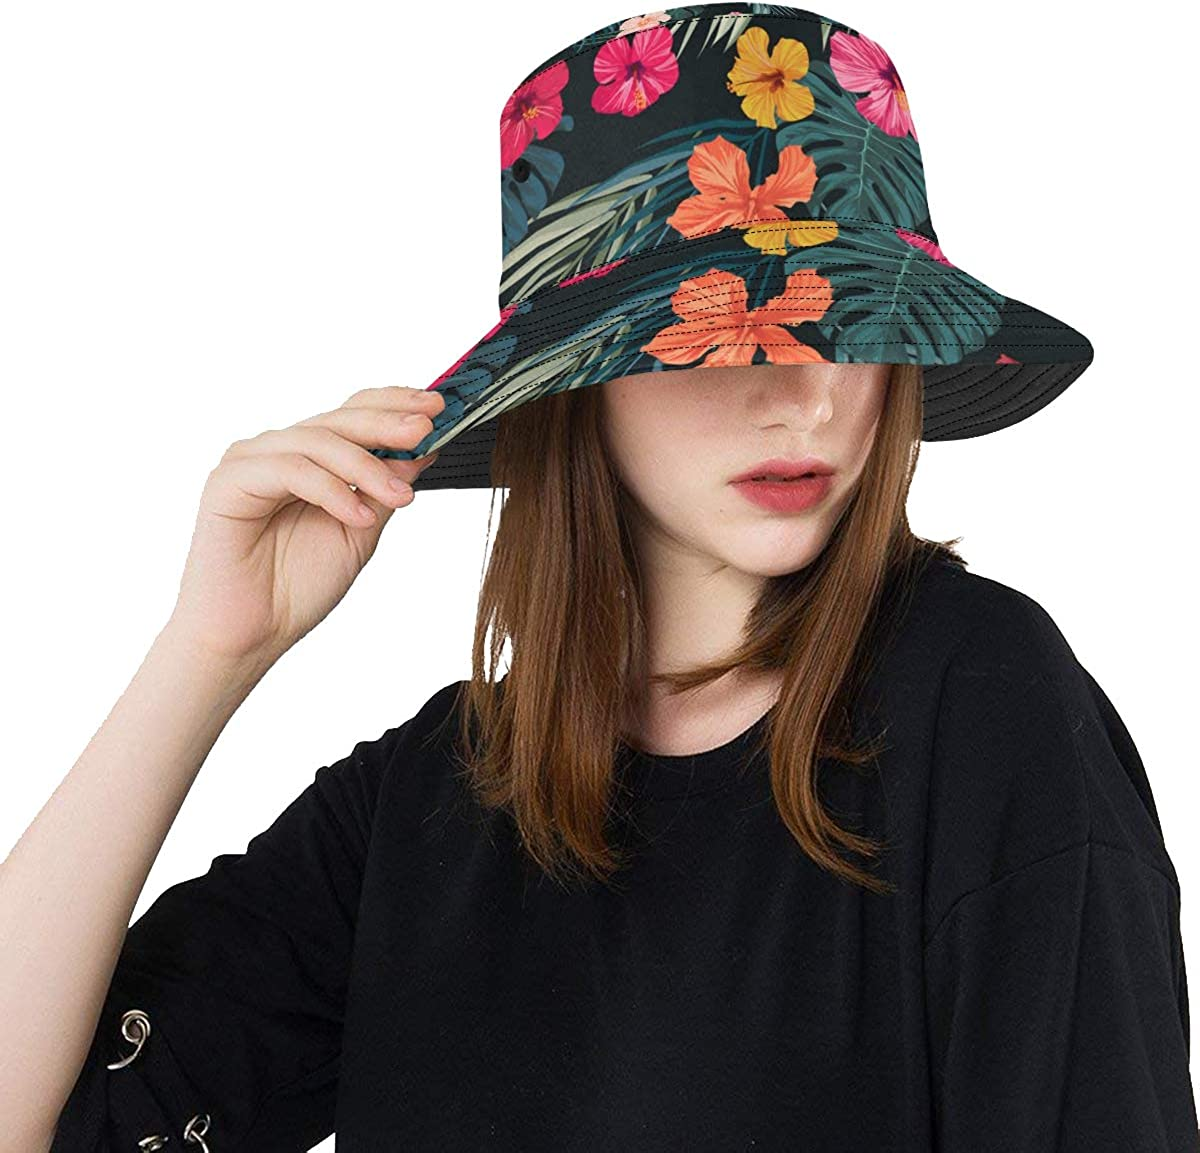 Outdoor Life Hat Tropical Rainforest Colorful Palm Trees Summer Unisex Fishing Sun Top Bucket Hats for Teens Women Fisherman Cap Outdoor Sport Fishing Hats for Boys